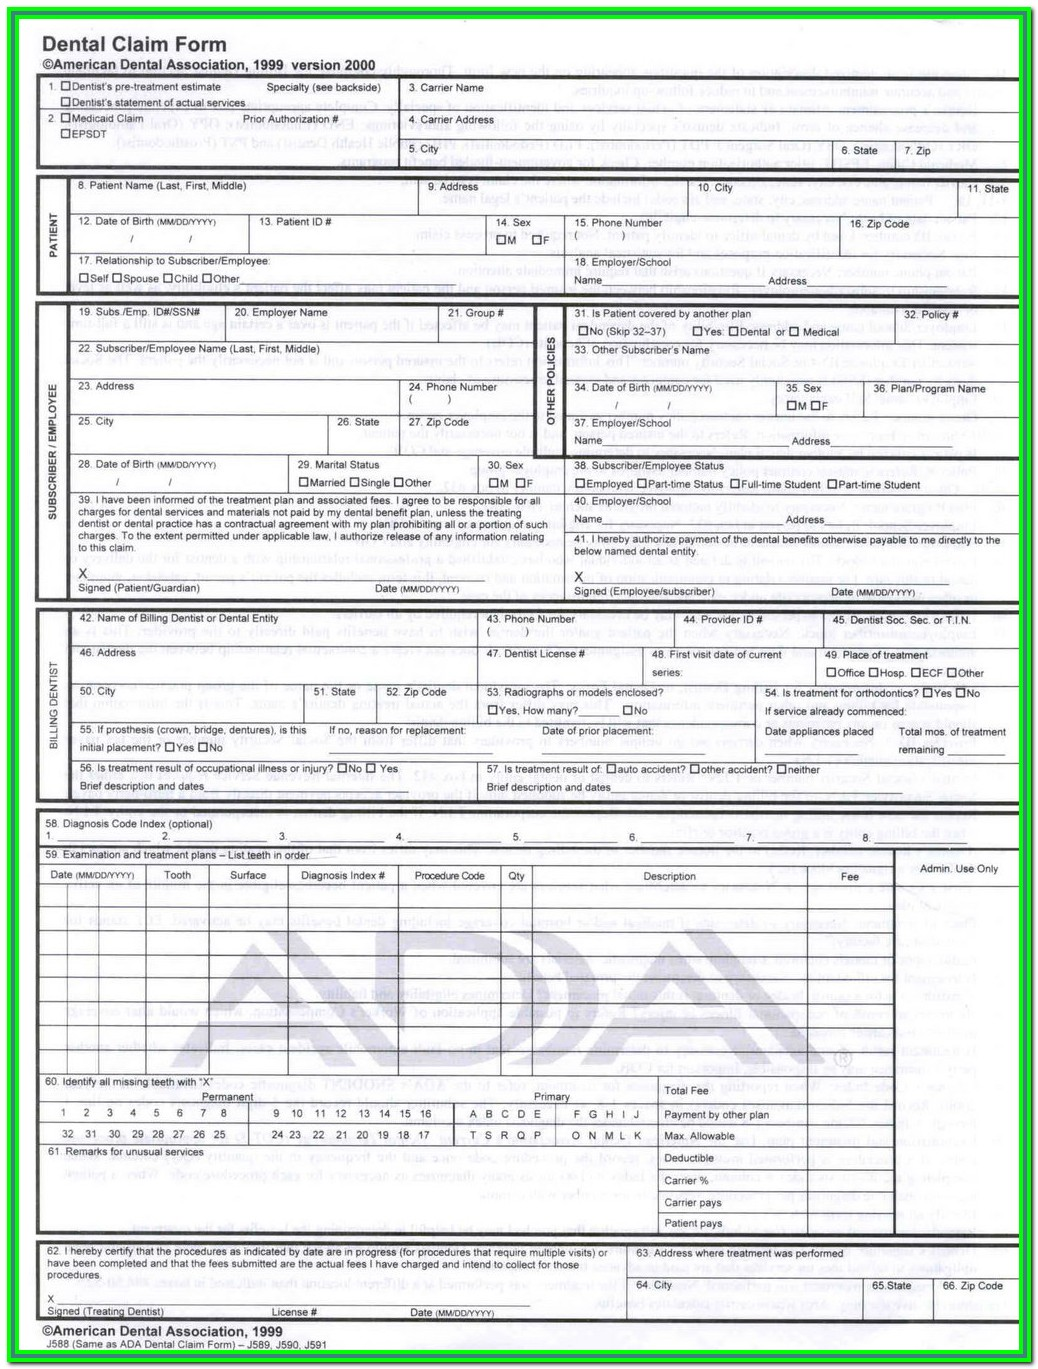 Form Cms 1500 Fillable